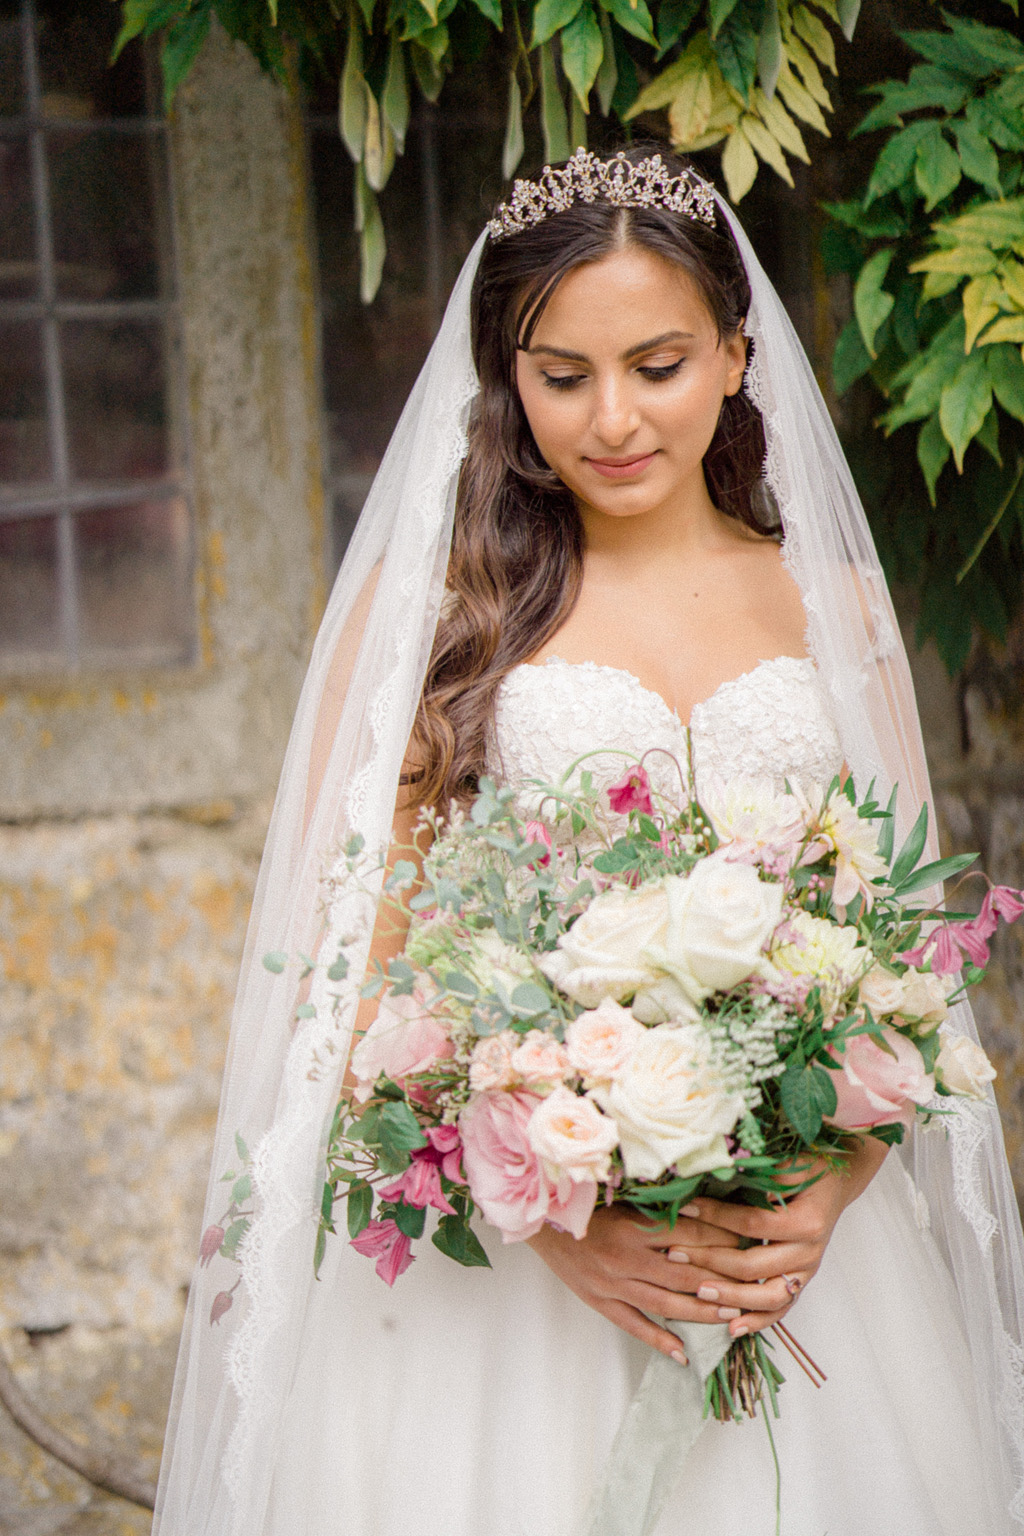 elegant and stylish modern classic wedding ideas from Clearwell Castle. Image credit Sara Cooper Photography